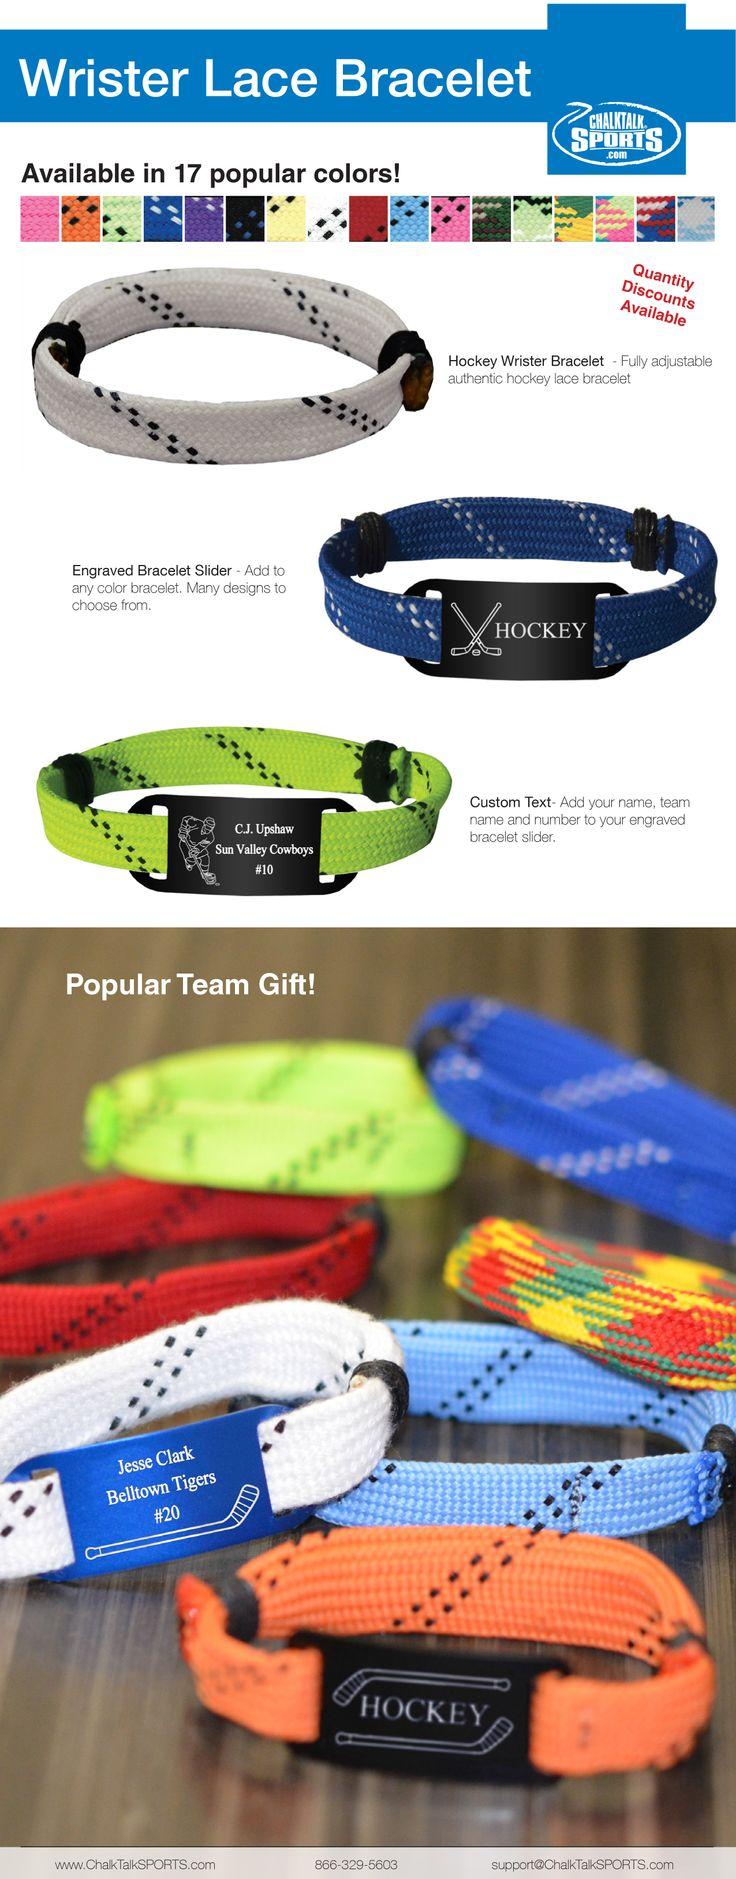 Hockey Lace Bracelets from ChalkTalkSports.com. Custom engraved hockey bracelets. #hockey #gifts